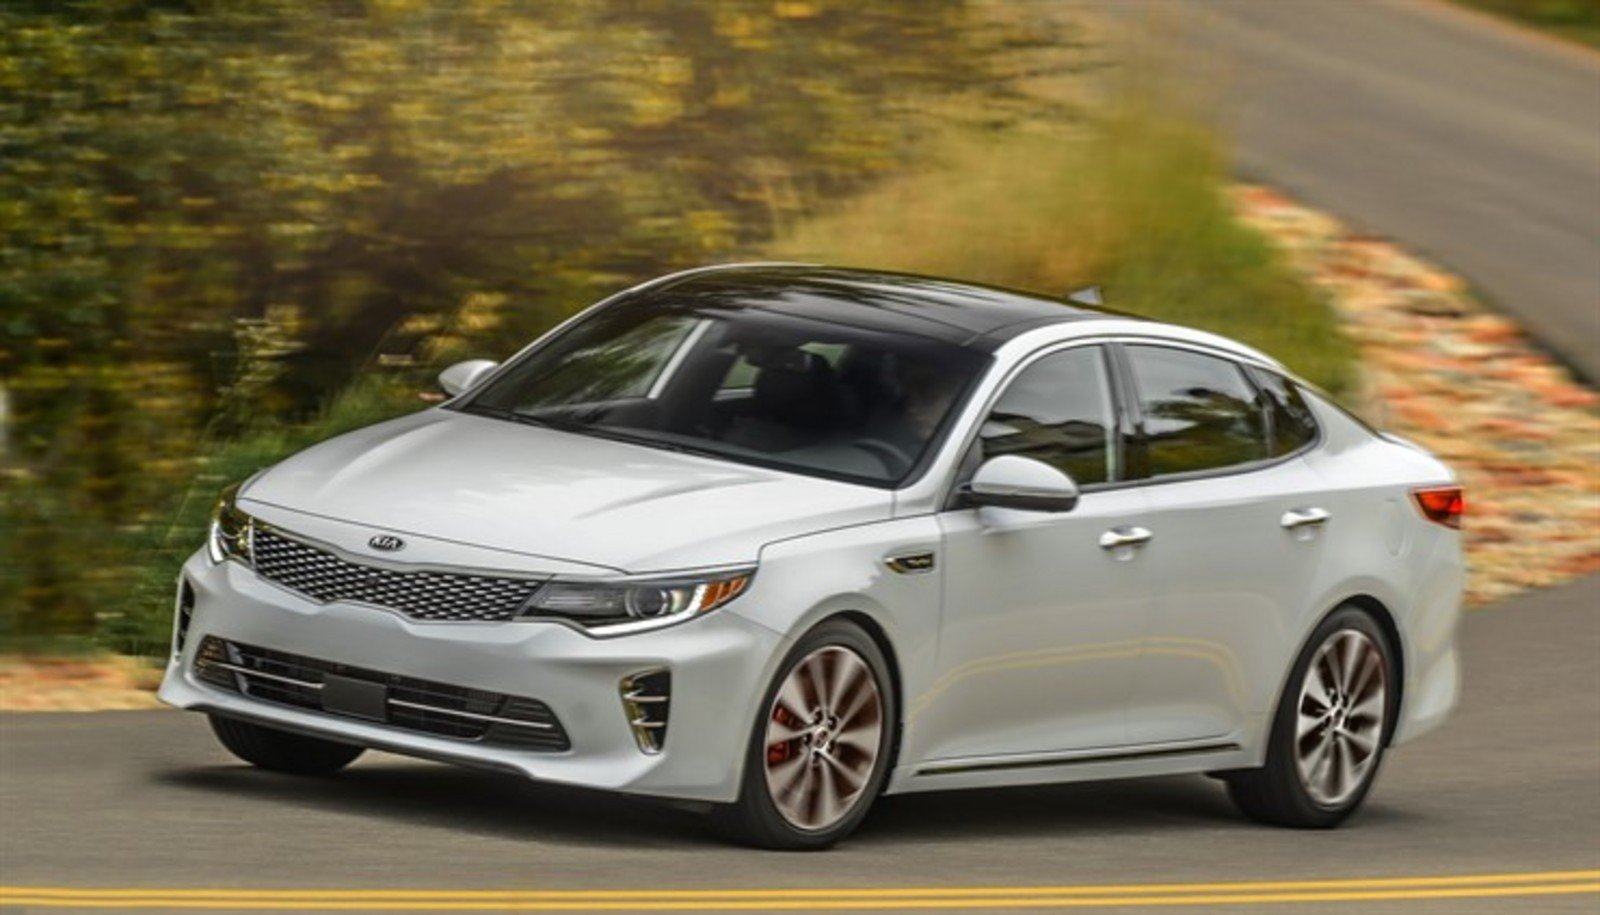 2016 kia optima turbo review review top speed. Black Bedroom Furniture Sets. Home Design Ideas